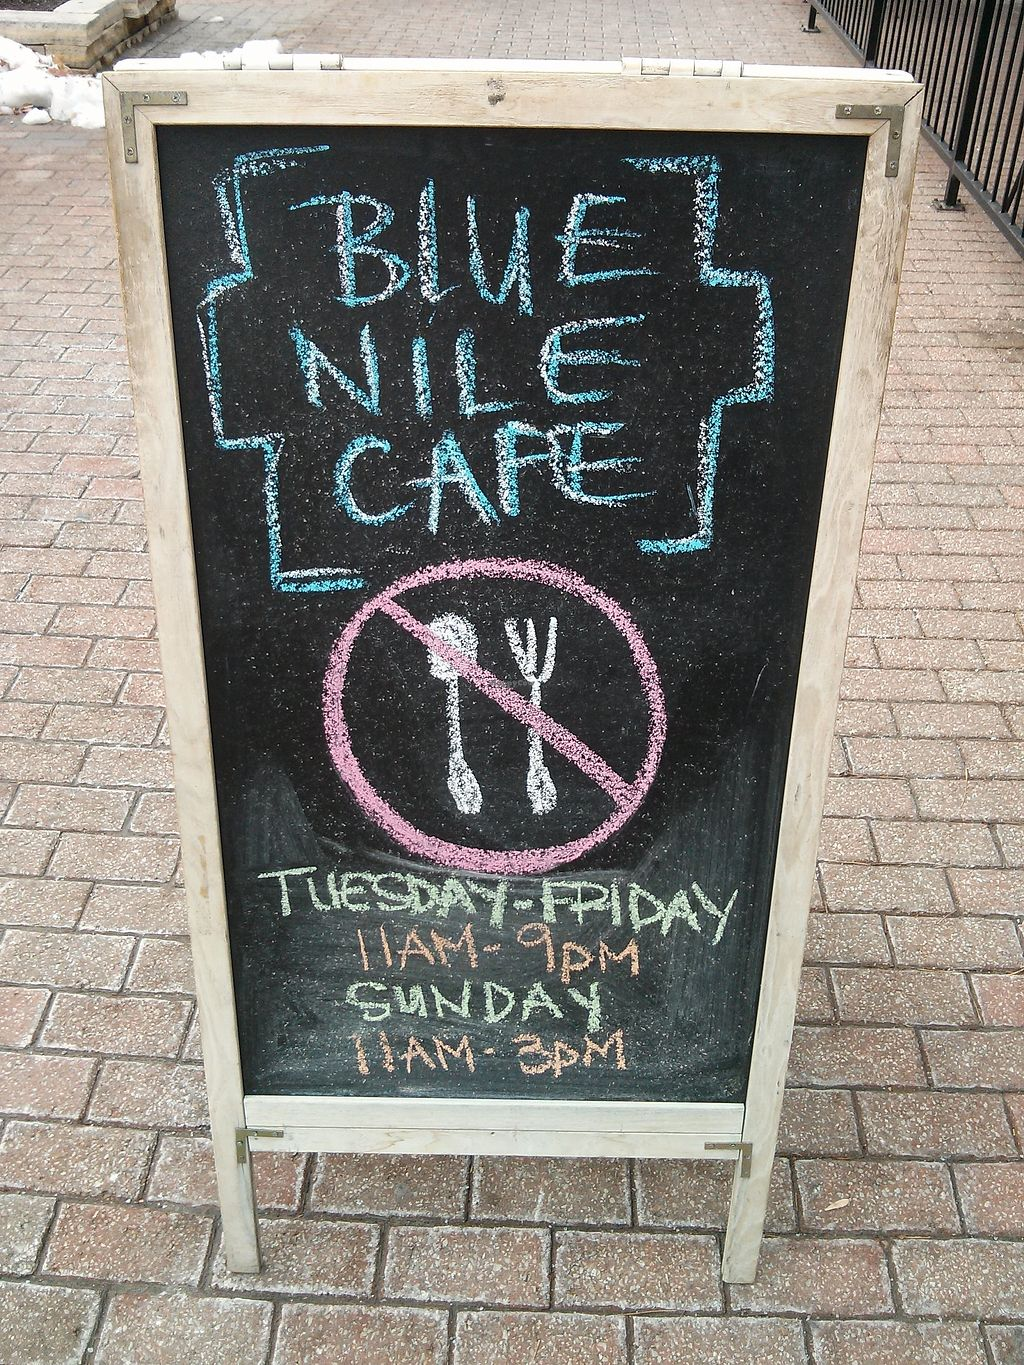 "Photo of Blue Nile Cafe  by <a href=""/members/profile/Justin%20K."">Justin K.</a> <br/>Outside sign from a few years ago...double check the hours! <br/> October 3, 2017  - <a href='/contact/abuse/image/4963/311196'>Report</a>"